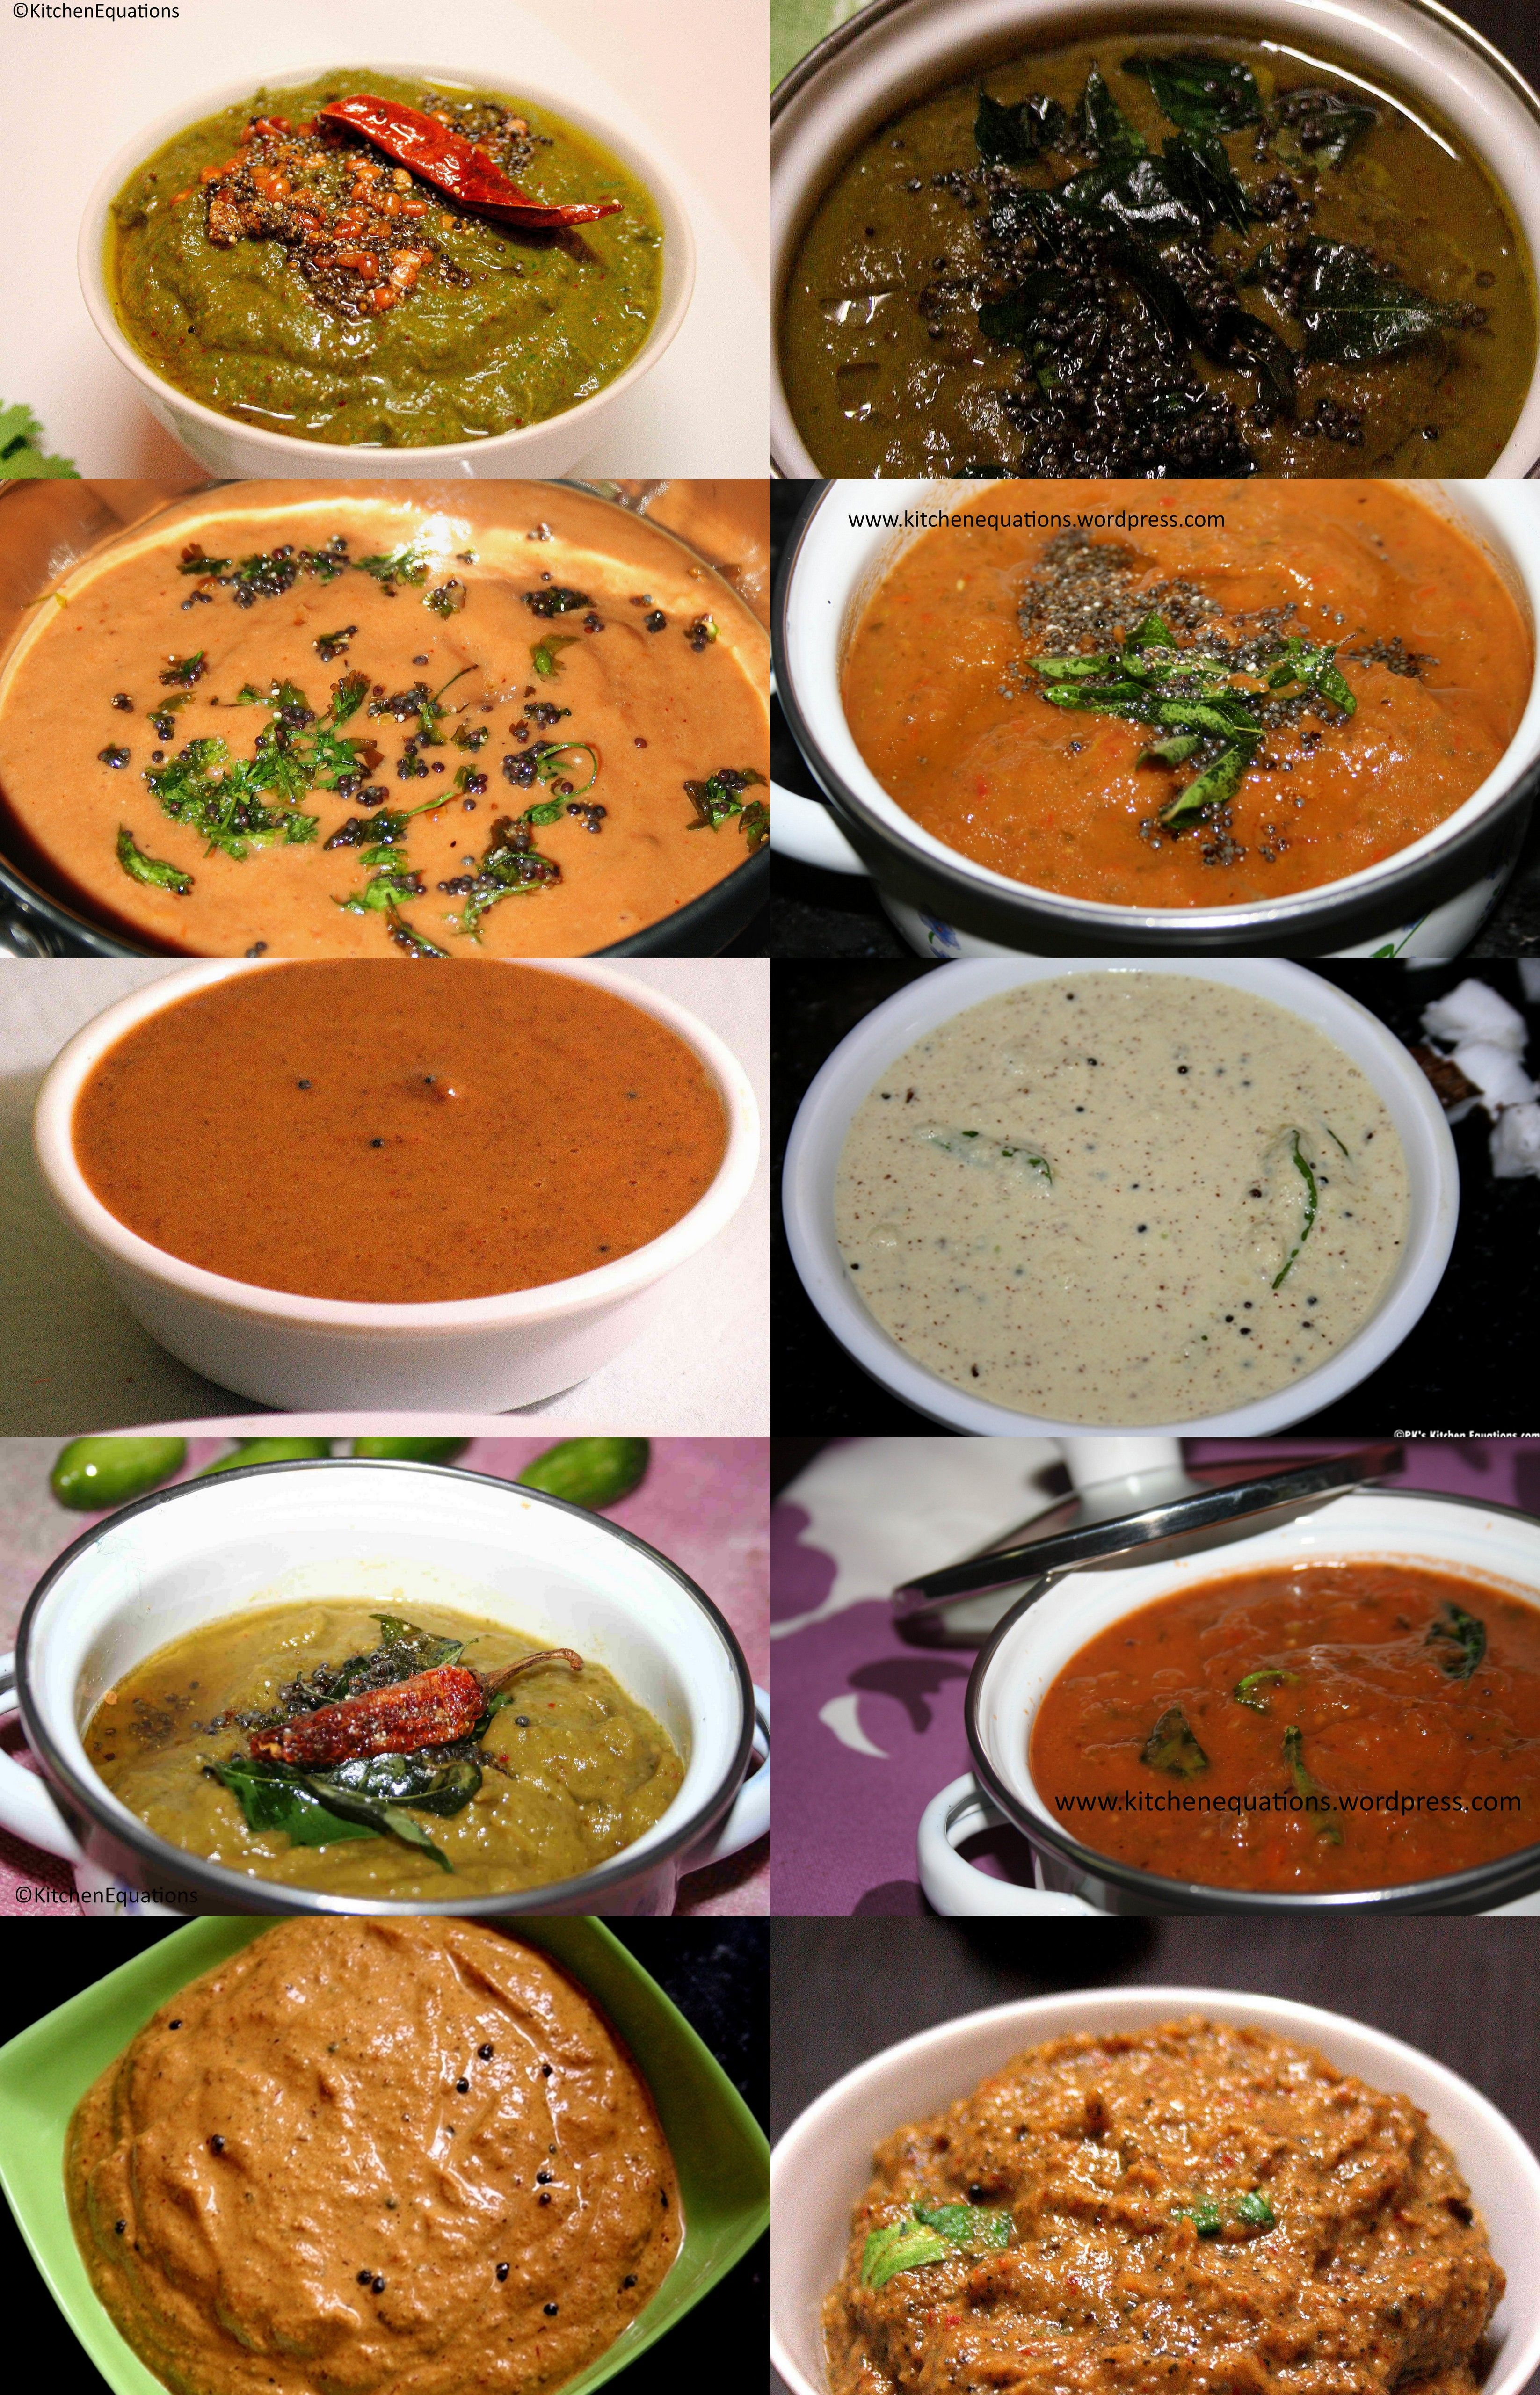 10 south indian chutney recipes easy and super tasty for any 10 south indian chutney recipes easy and super tasty for any typical breakfast forumfinder Choice Image